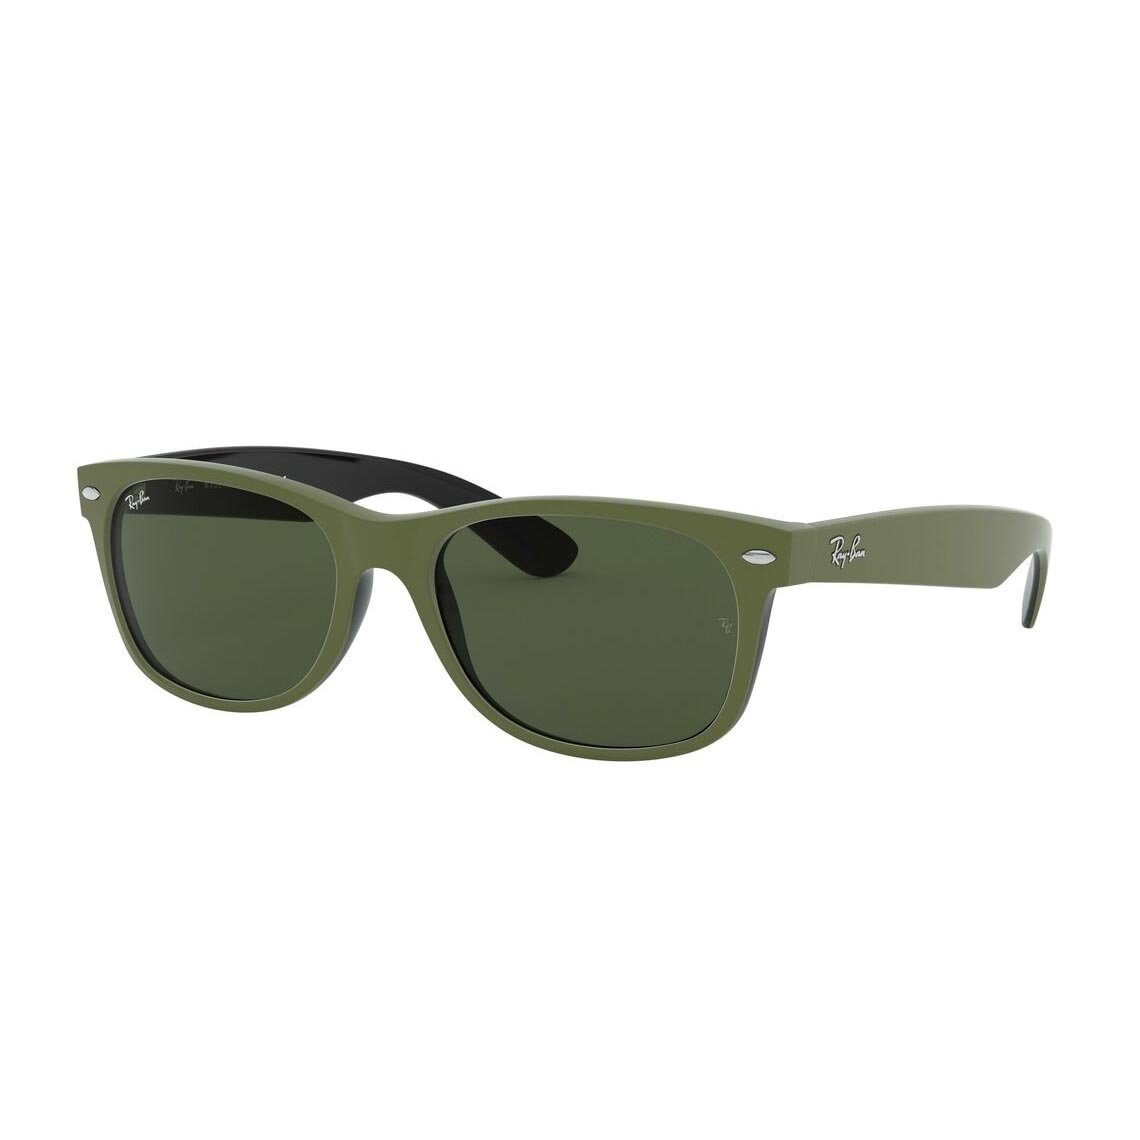 Ray-Ban New Wayfarer RB2132 646531 5518